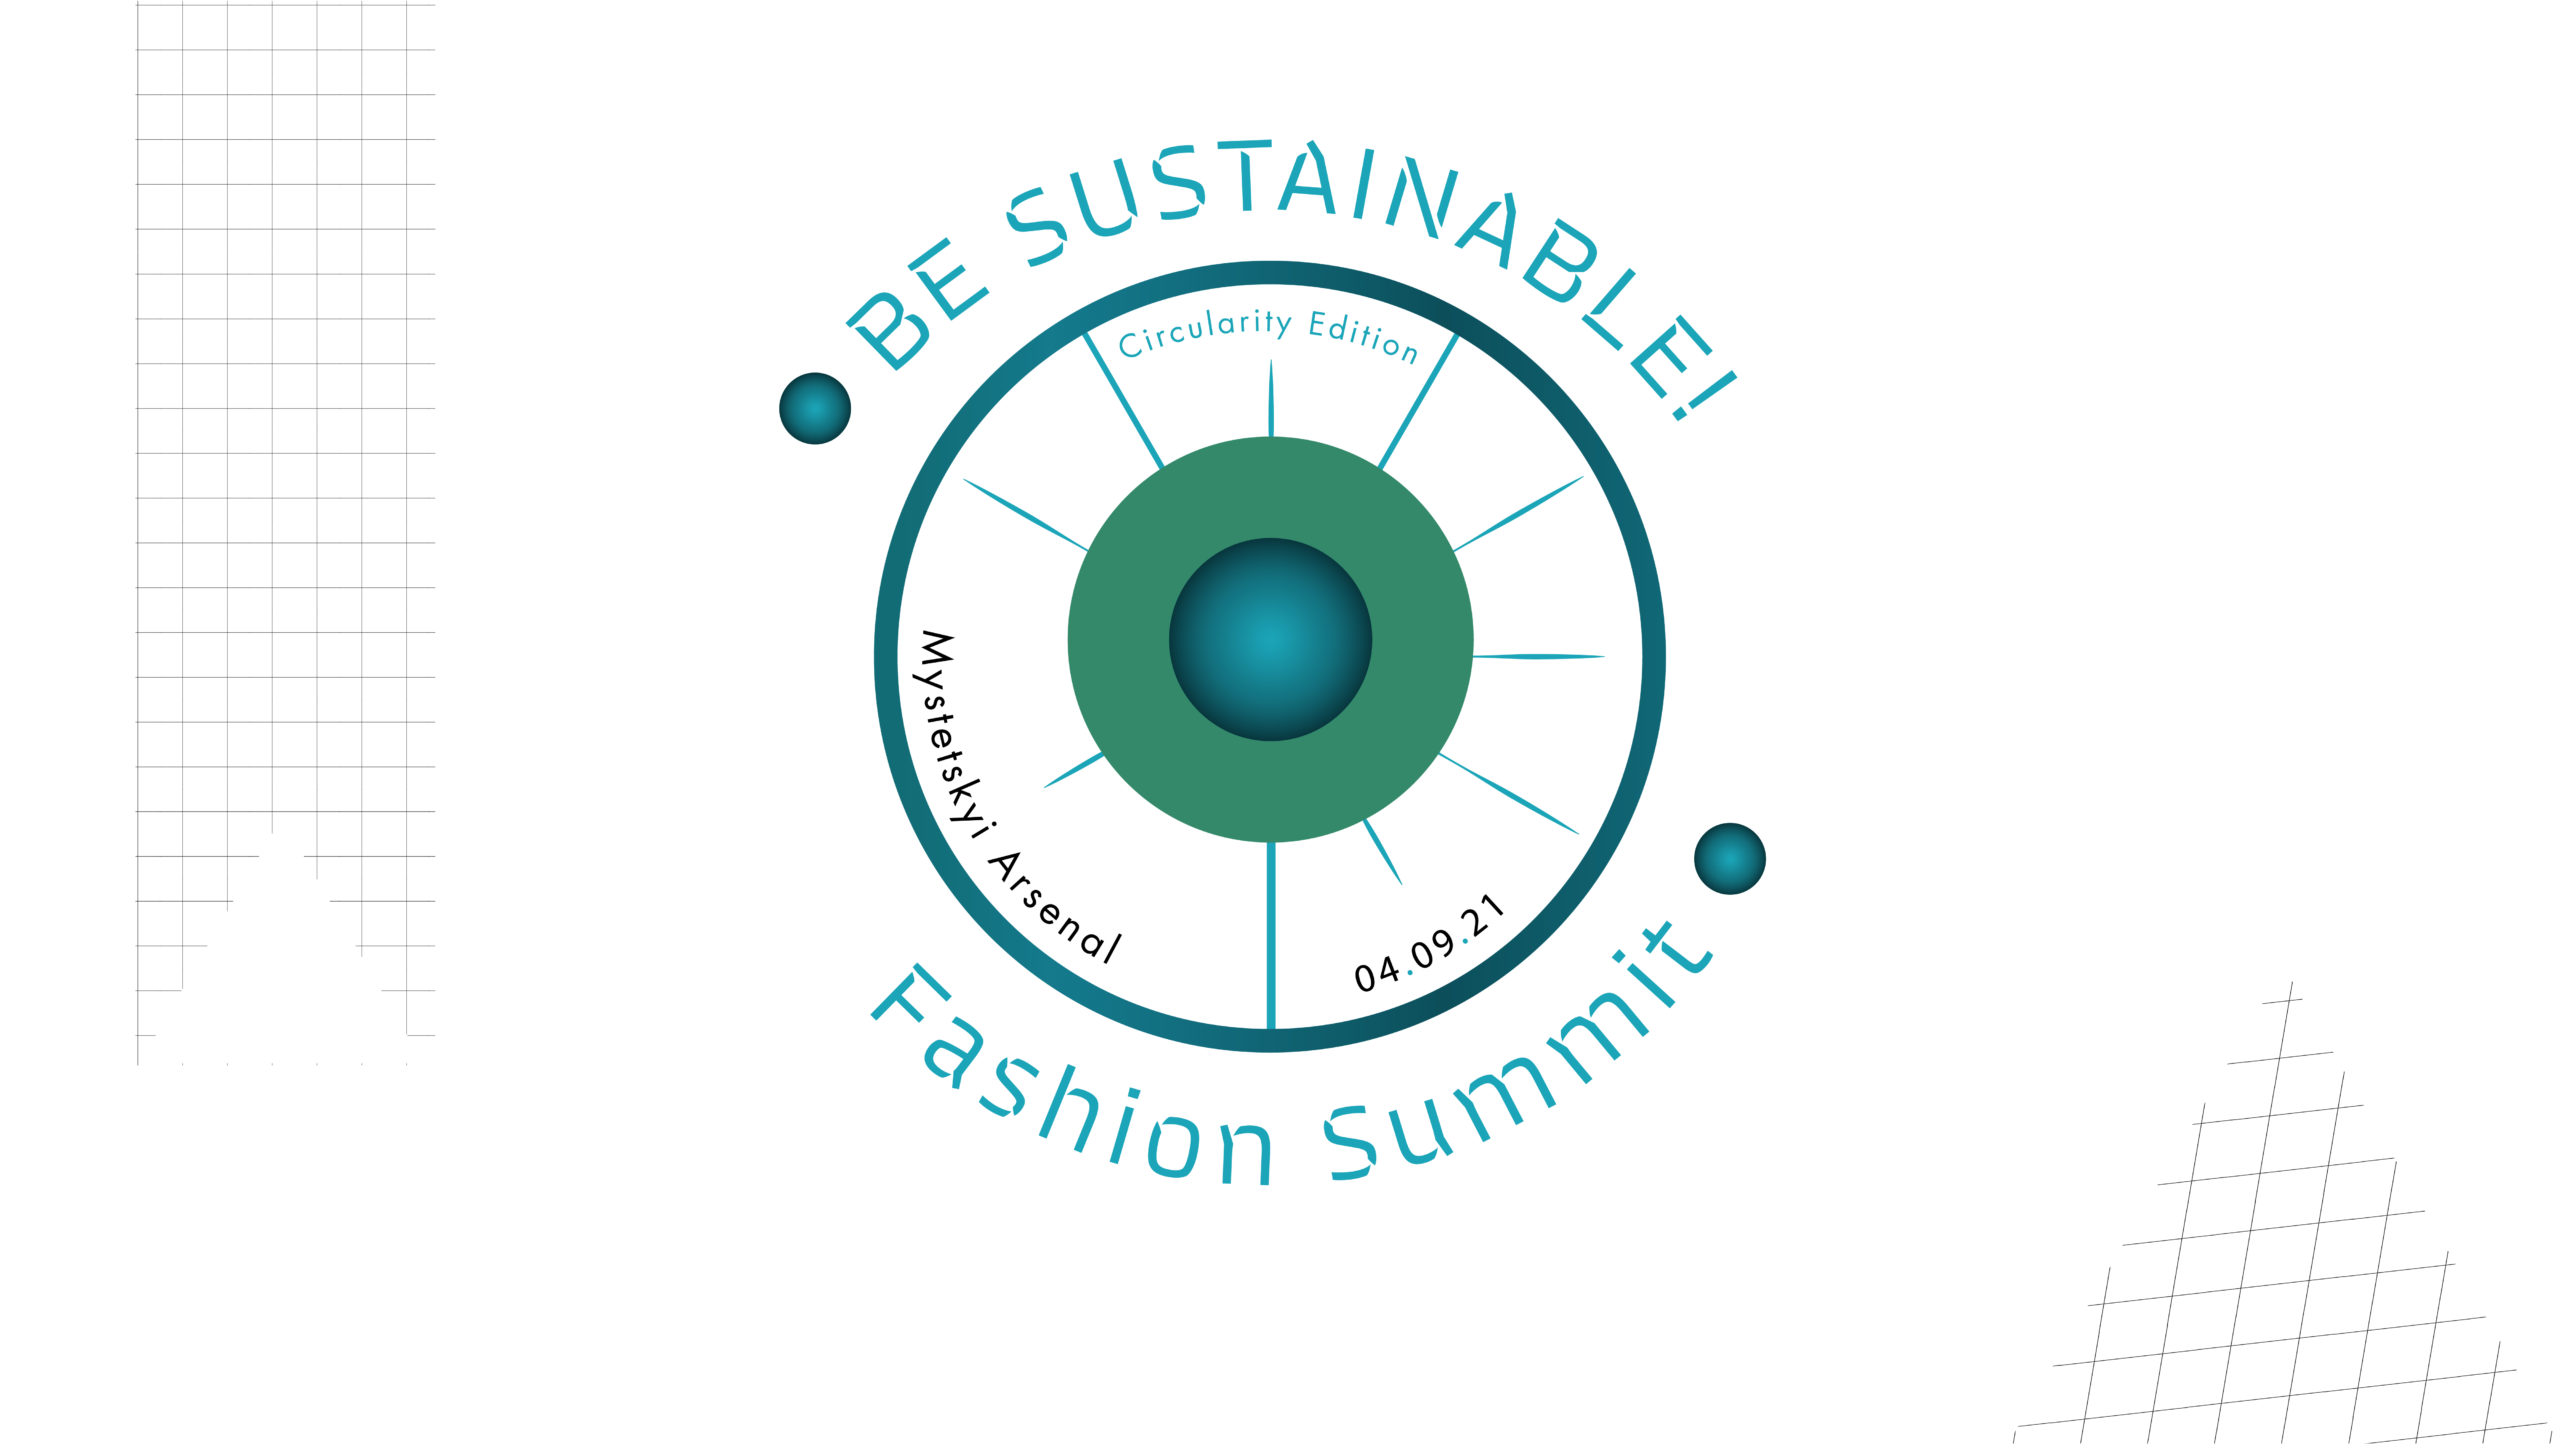 BE SUSTAINABLE! Fashion Summit will take place in Ukraine for the fourth time